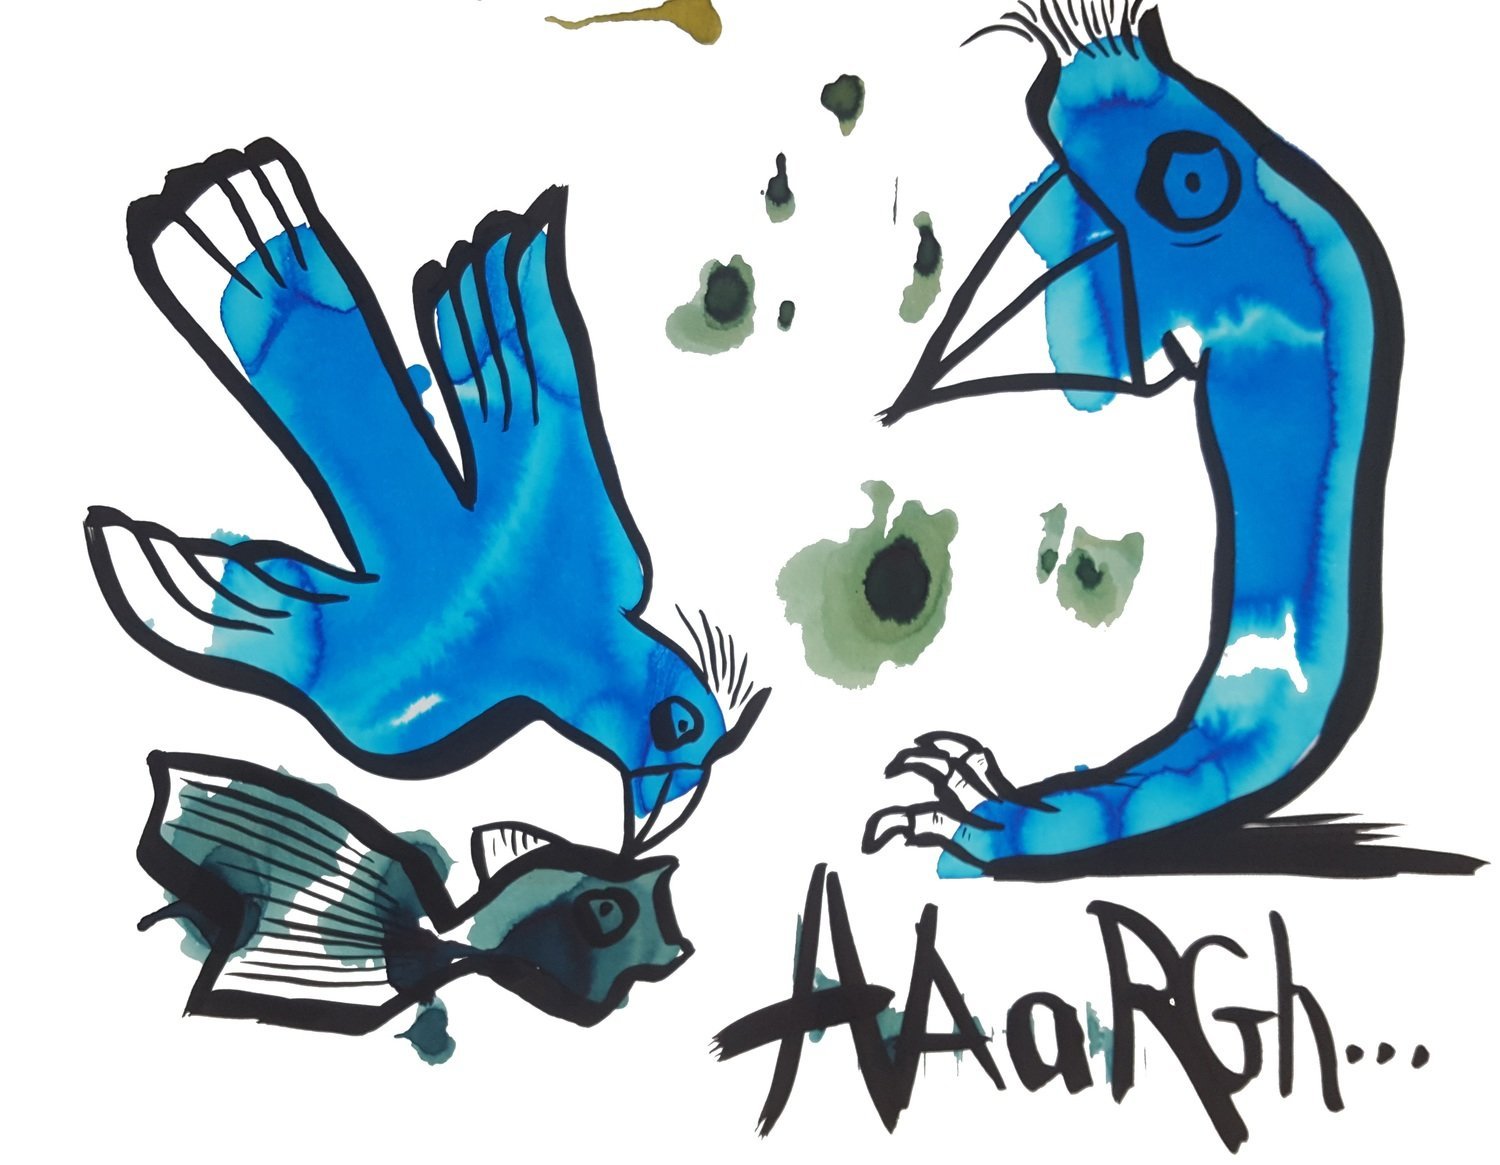 Two blue birds and a scared fish